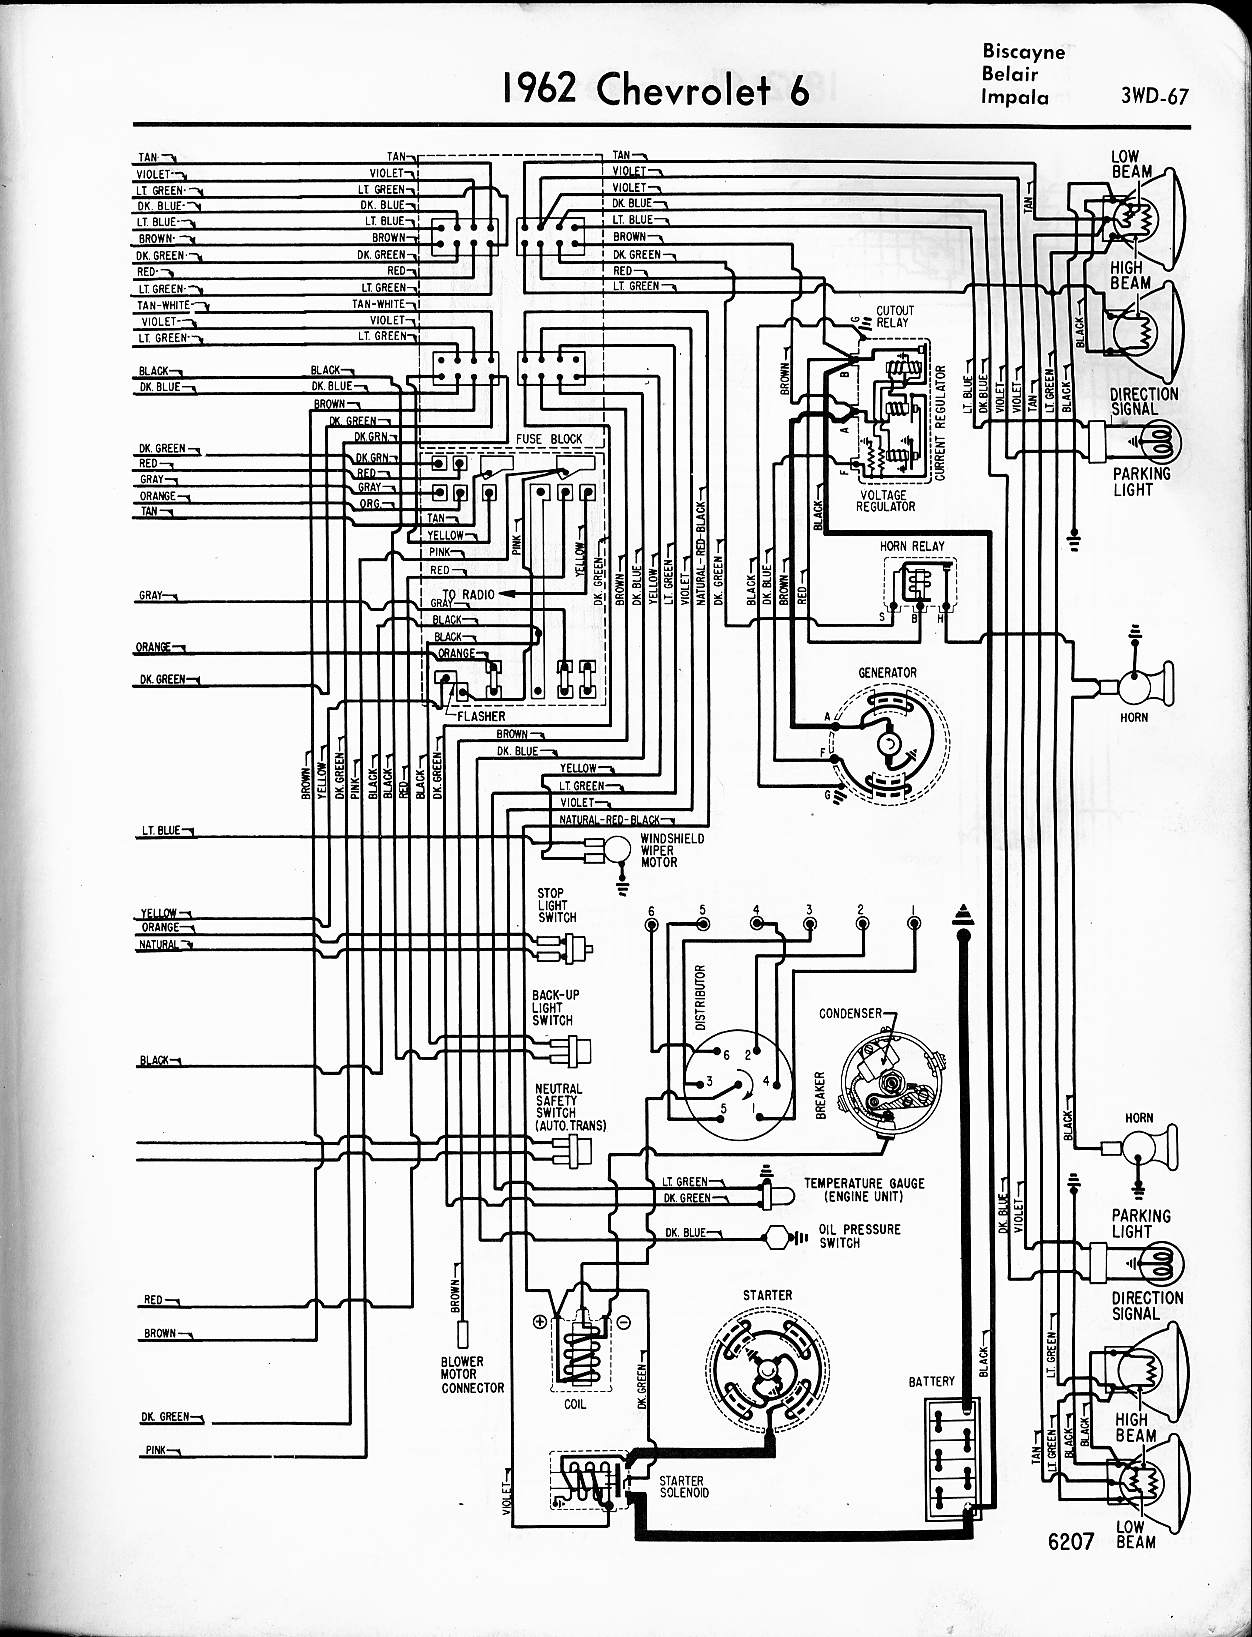 62 chevy wiring diagram wiring diagram Painless Dual Battery Wiring Kit 57 65 chevy wiring diagrams1962 6 cyl biscayne belair impala left half